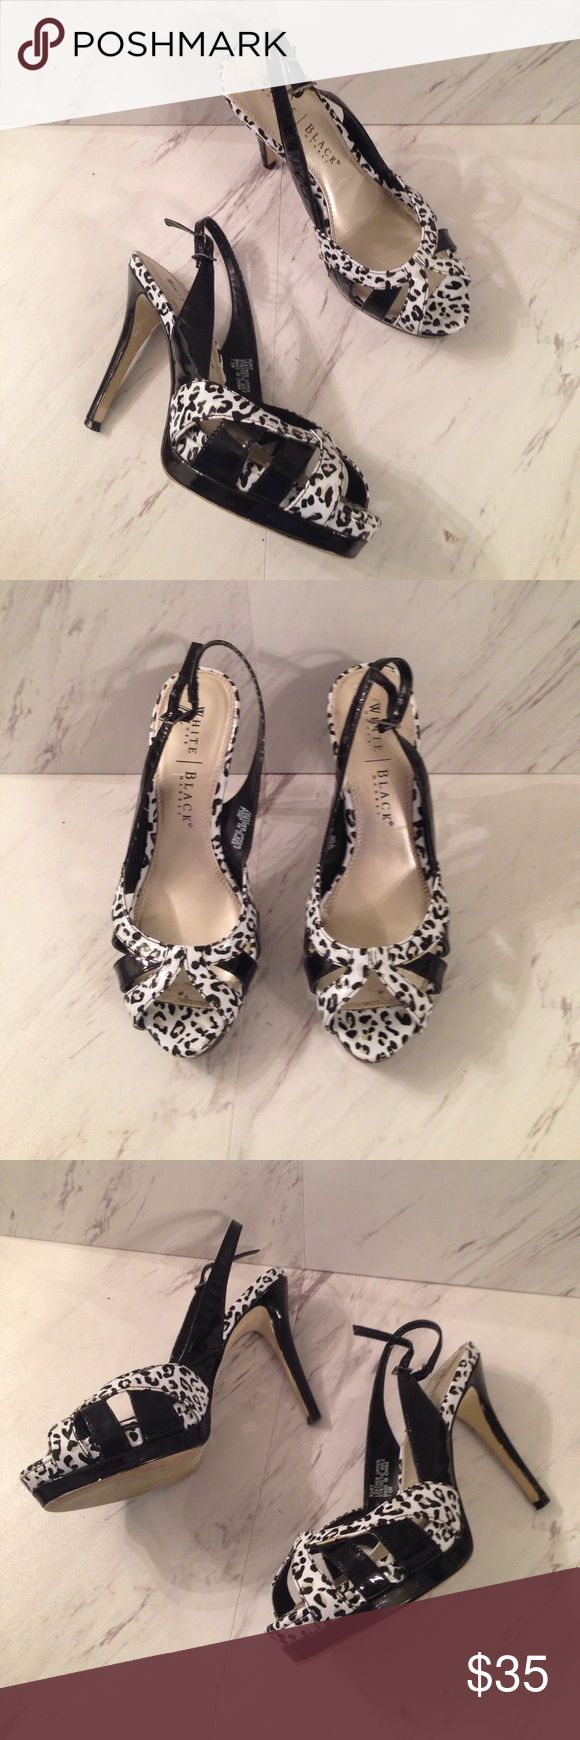 "White House Black Market Leopard Strappy Heels Black and white snow leopard pattern heels. Strappy at the toe and the ankle. Good condition Sandals. Size 7.5 M, leather upper with an approx 4"" heel and some marks on the heels and around the base. Please view photos and ask questions. White House Black Market Shoes Heels"